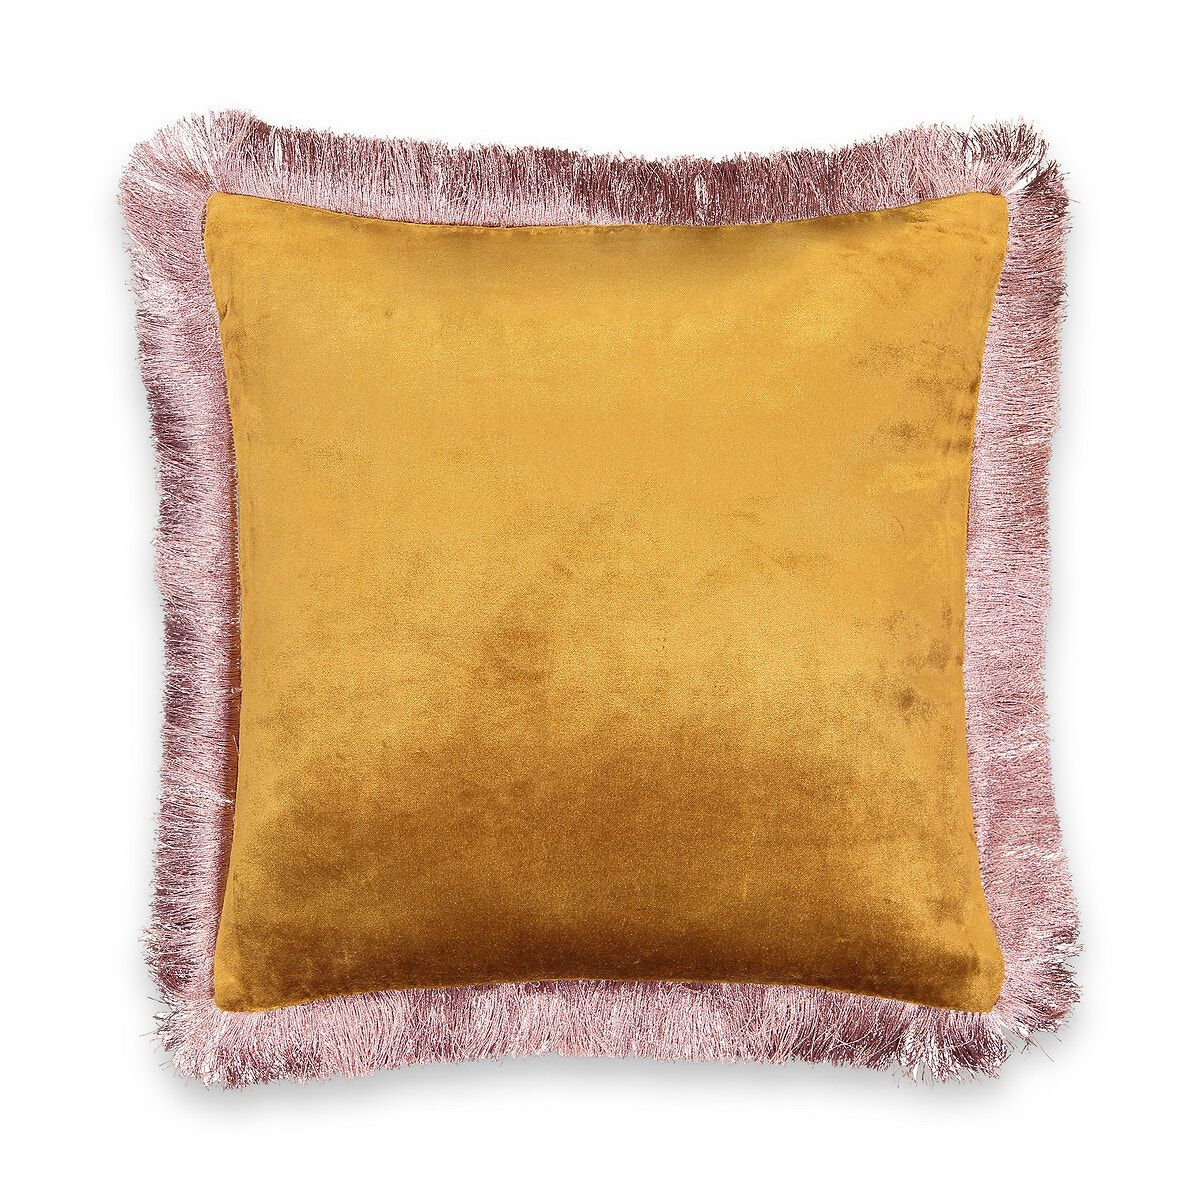 The astana velvet cushion cover. Pair it with other printed or plain cushions for a sophisticated atmosphere!product details: •  velvet 53% viscose, 47% cotton •  finished with contrast fringes, 100% polyester •  zip fastening at the backdesigned for the terra range of cushion pads, available online..dimensions : •  45 x 45cm